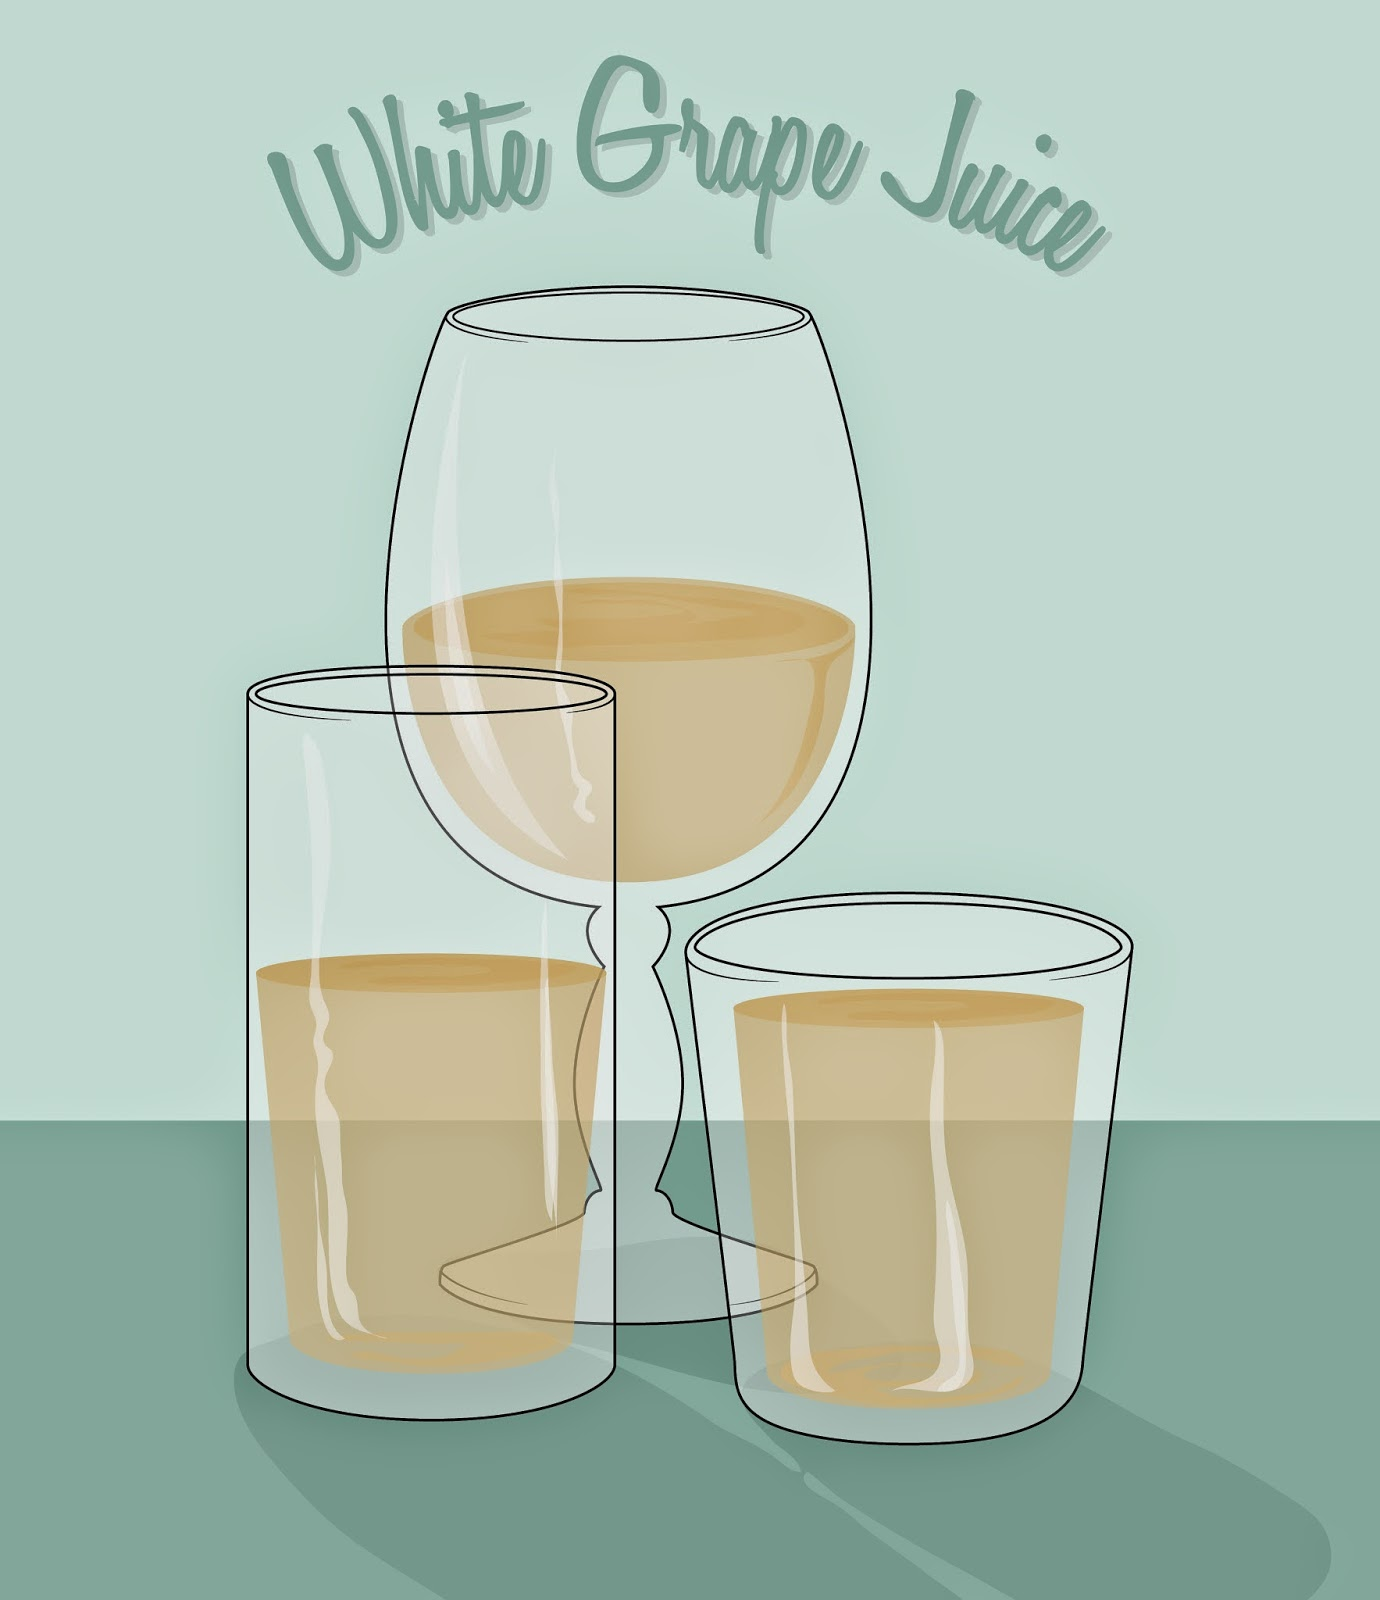 glasses-of-juice, glass-of-juice, welch's-white-grape-juice